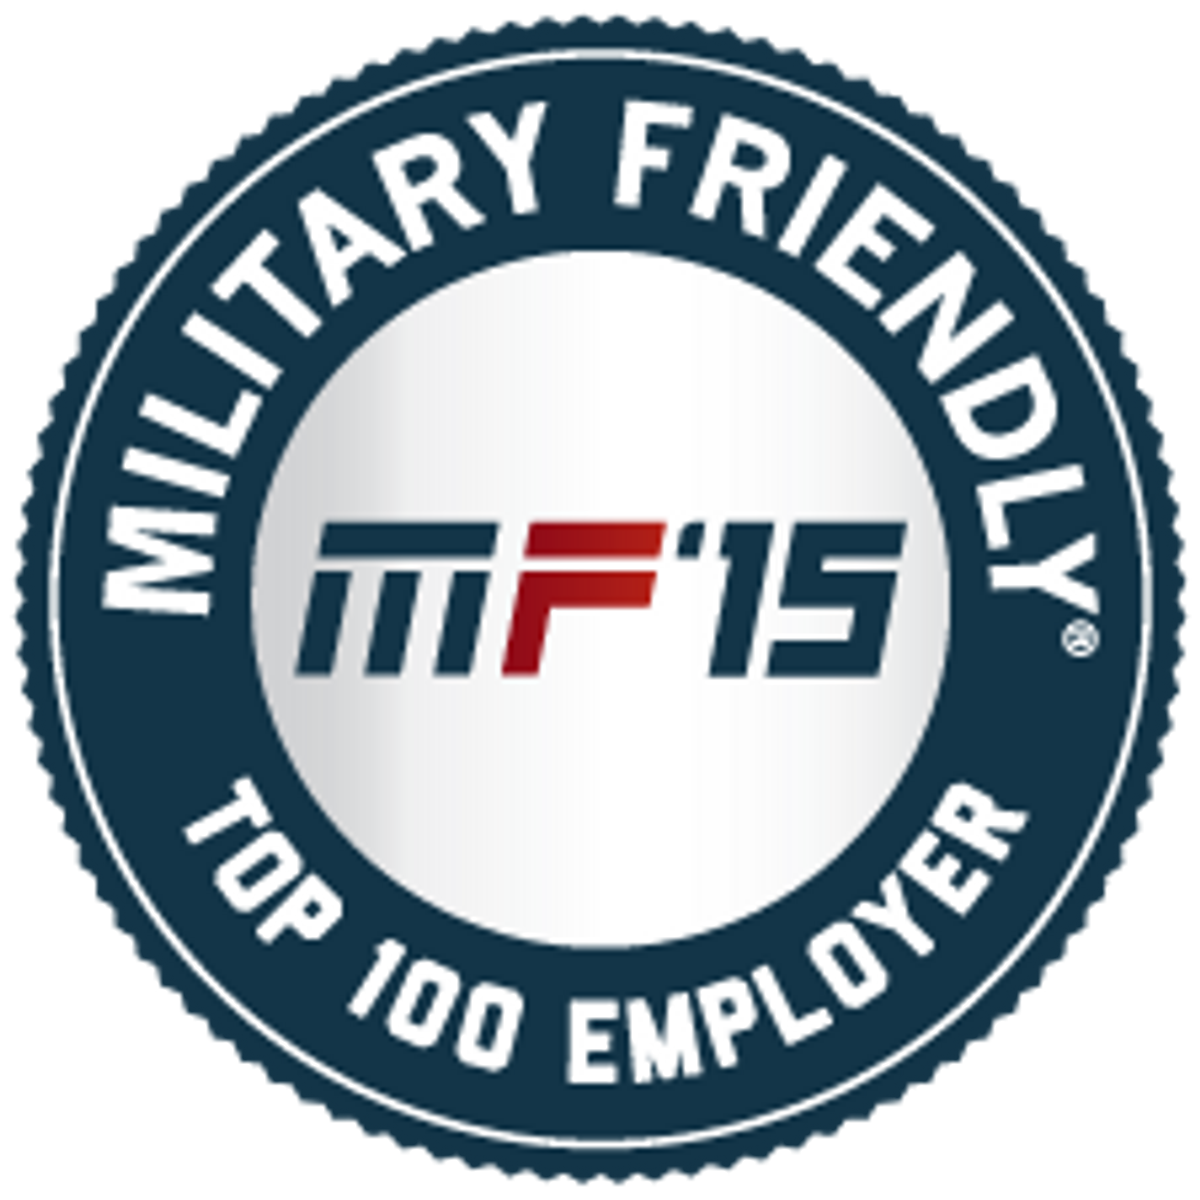 Penske Once Again a Top 100 Military-Friendly Employer